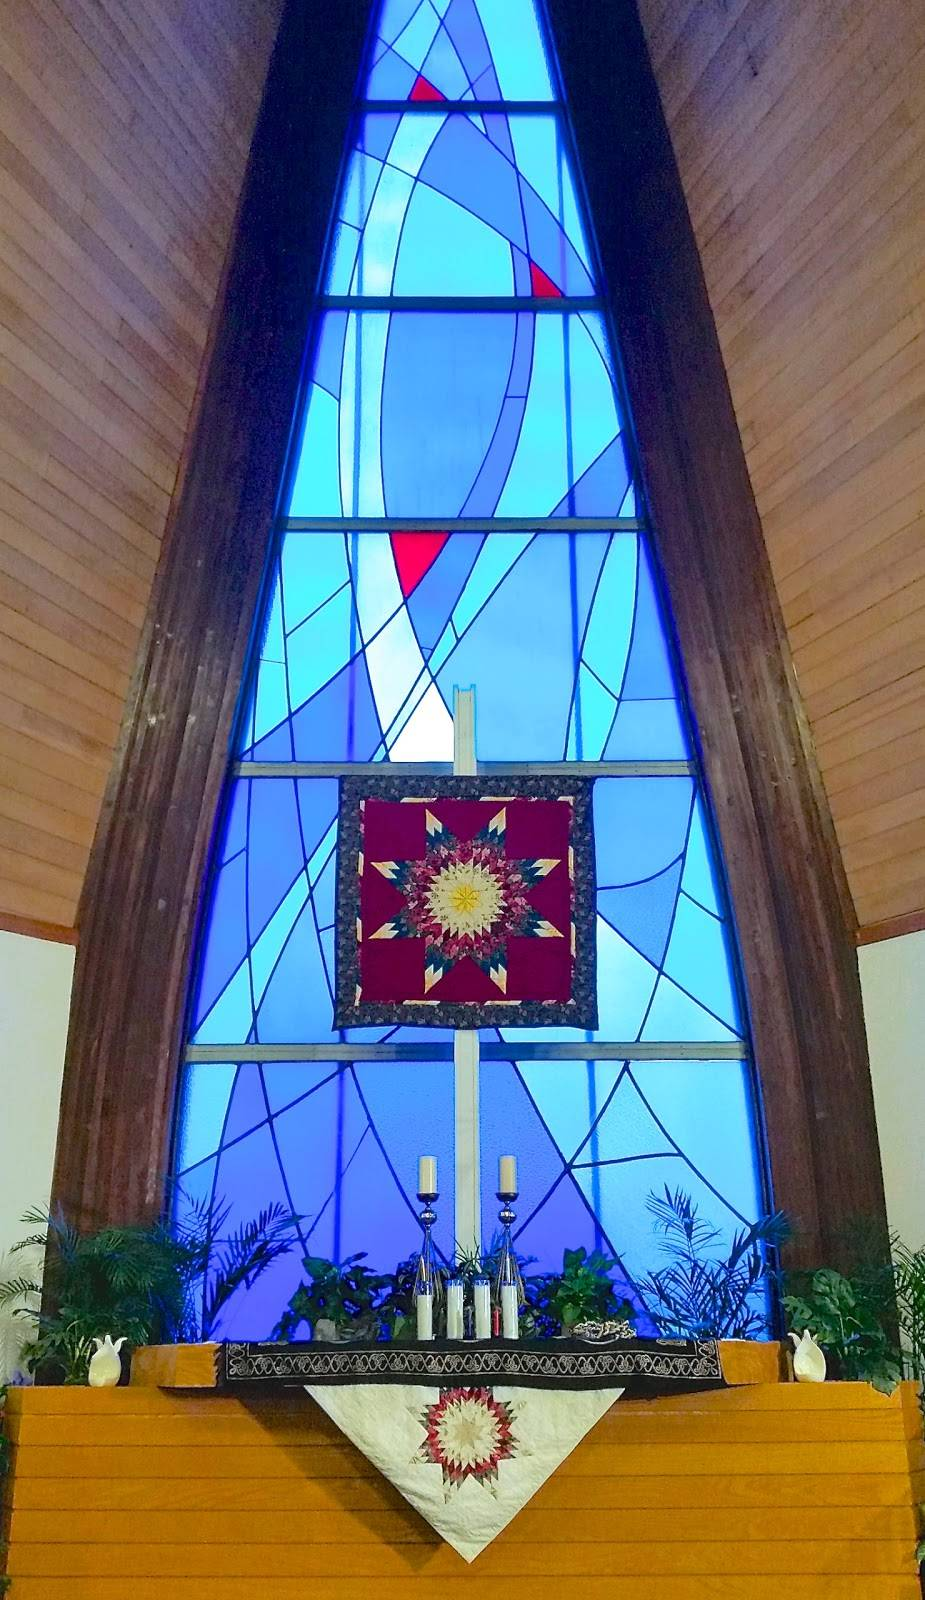 Clackamas United Church of Christ - church  | Photo 2 of 9 | Address: 15303 SE Webster Rd, Milwaukie, OR 97267, USA | Phone: (503) 654-0741